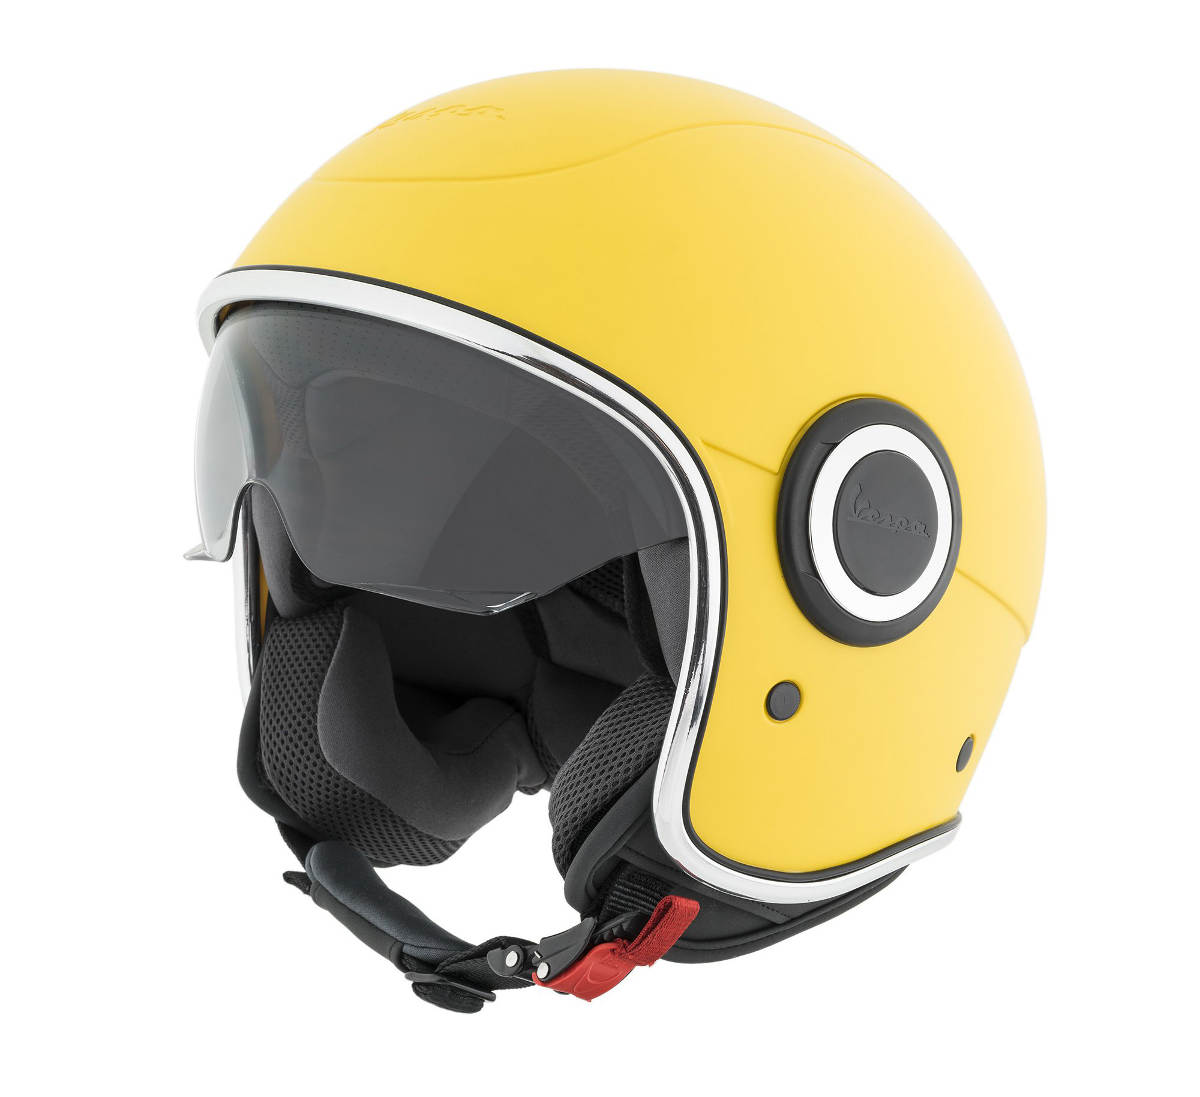 New Vespa VJ and VJ1 Helmet Colours Out Now | ResCogs